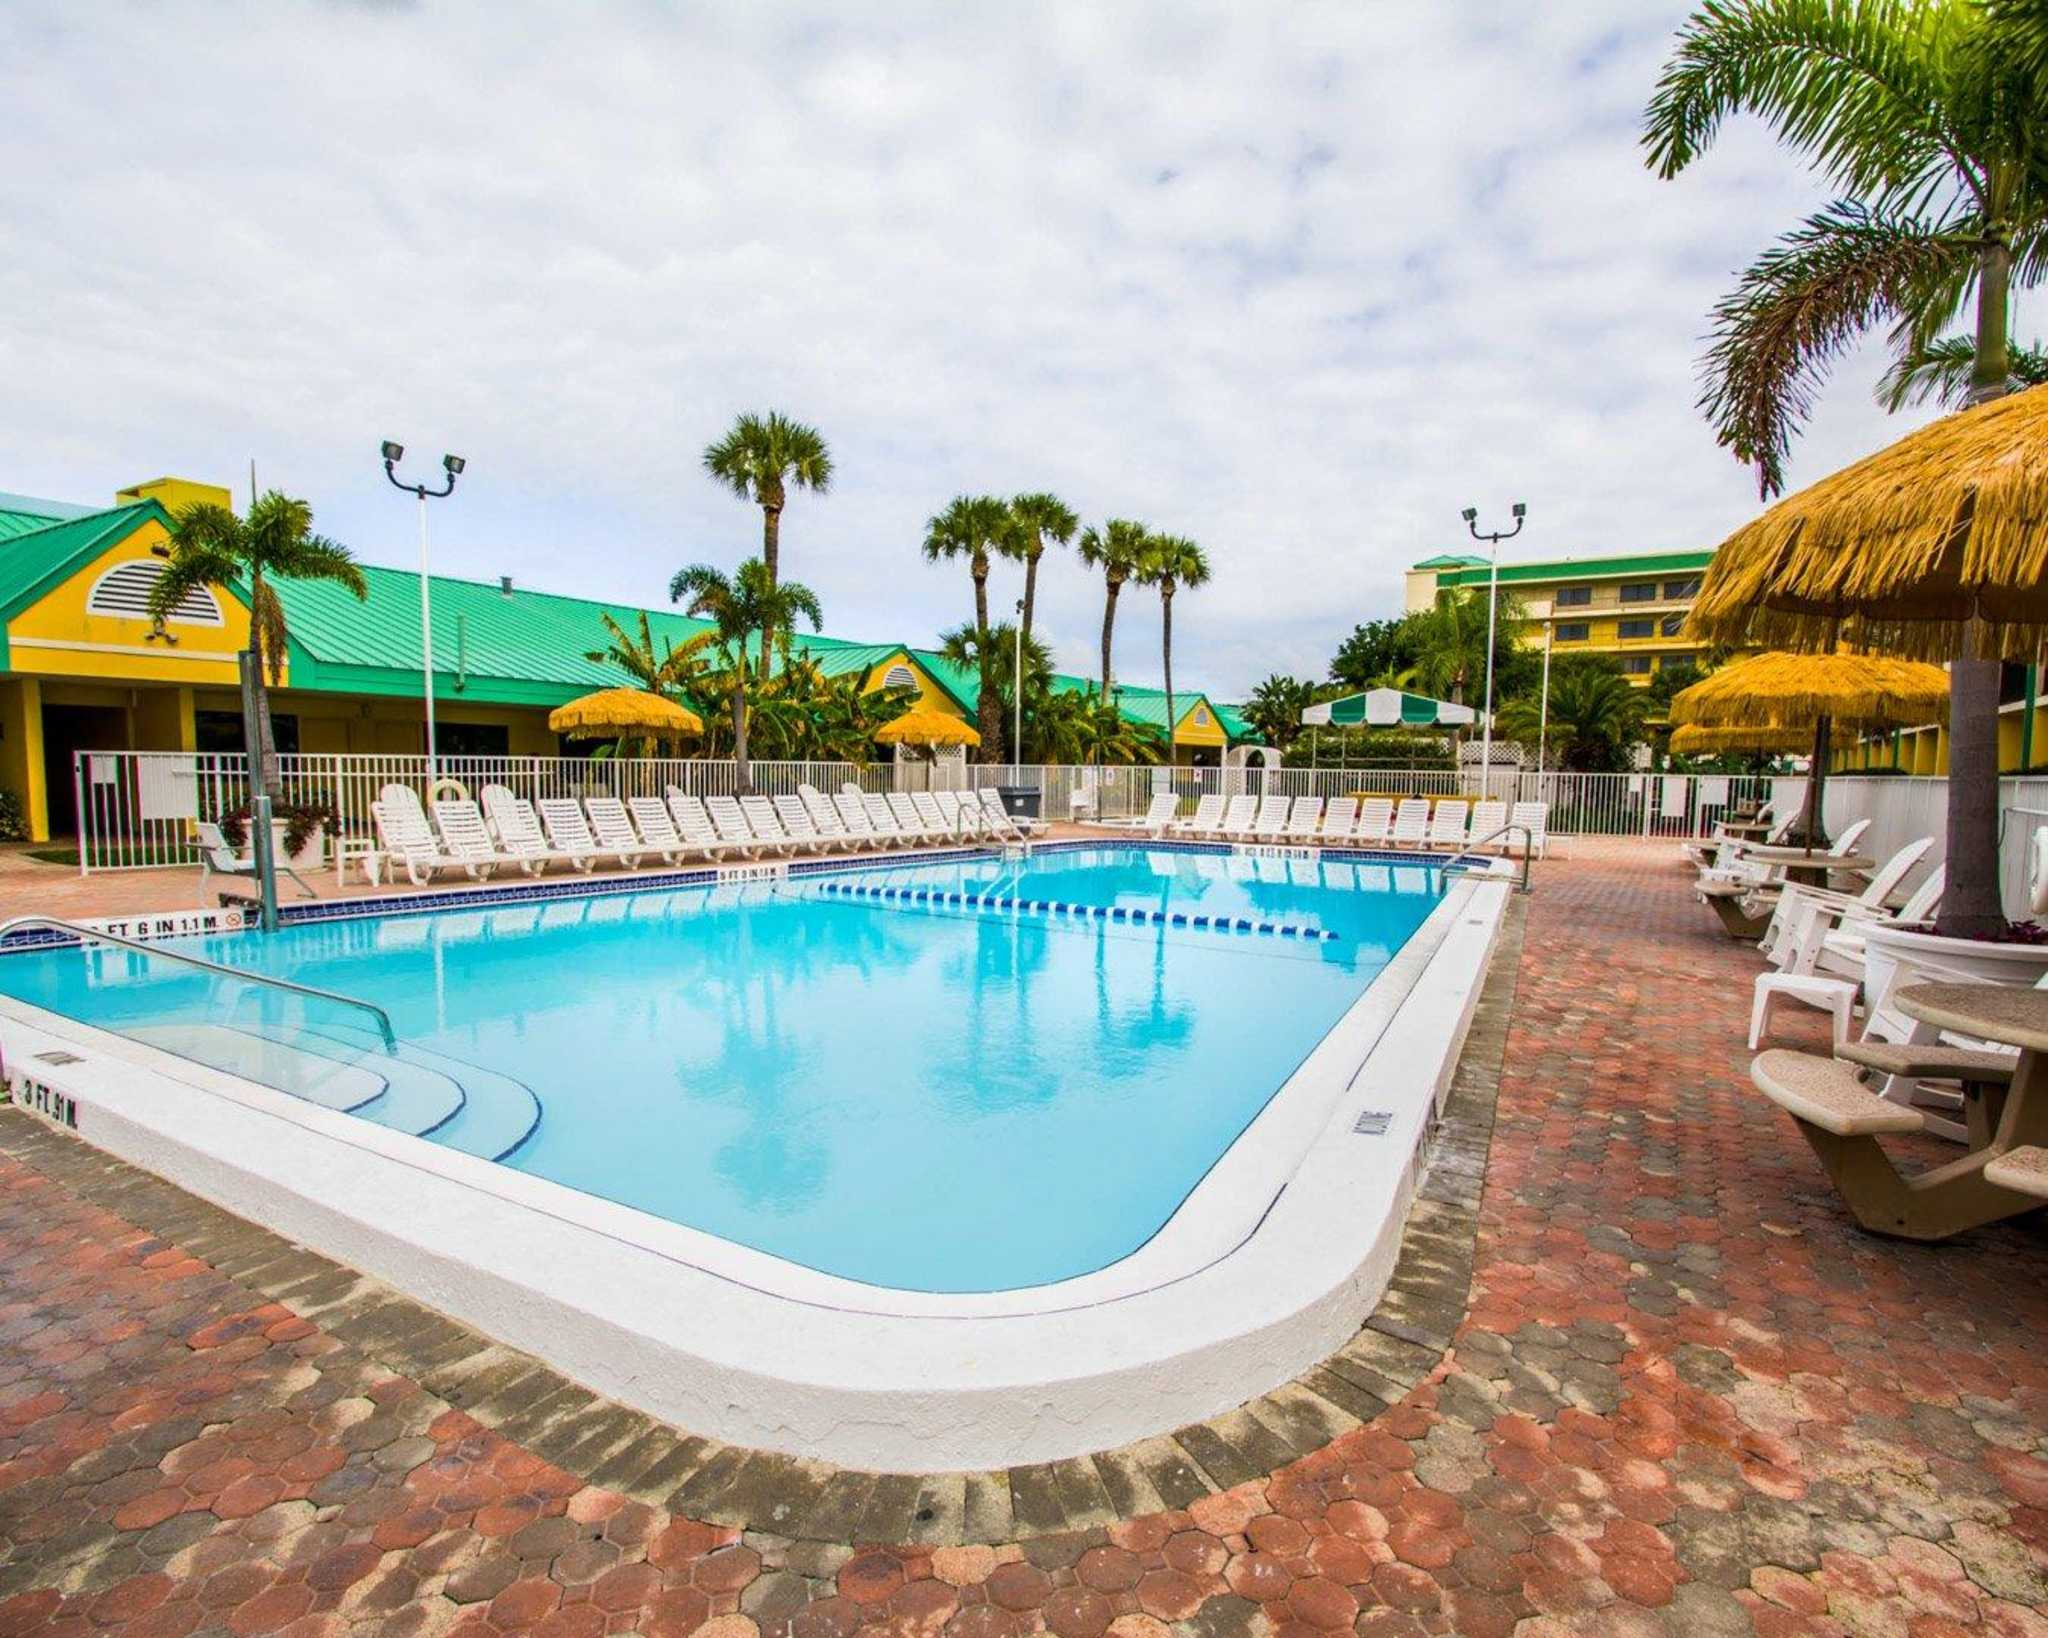 Hotel In Cocoa Beach With Hot Tub In Room